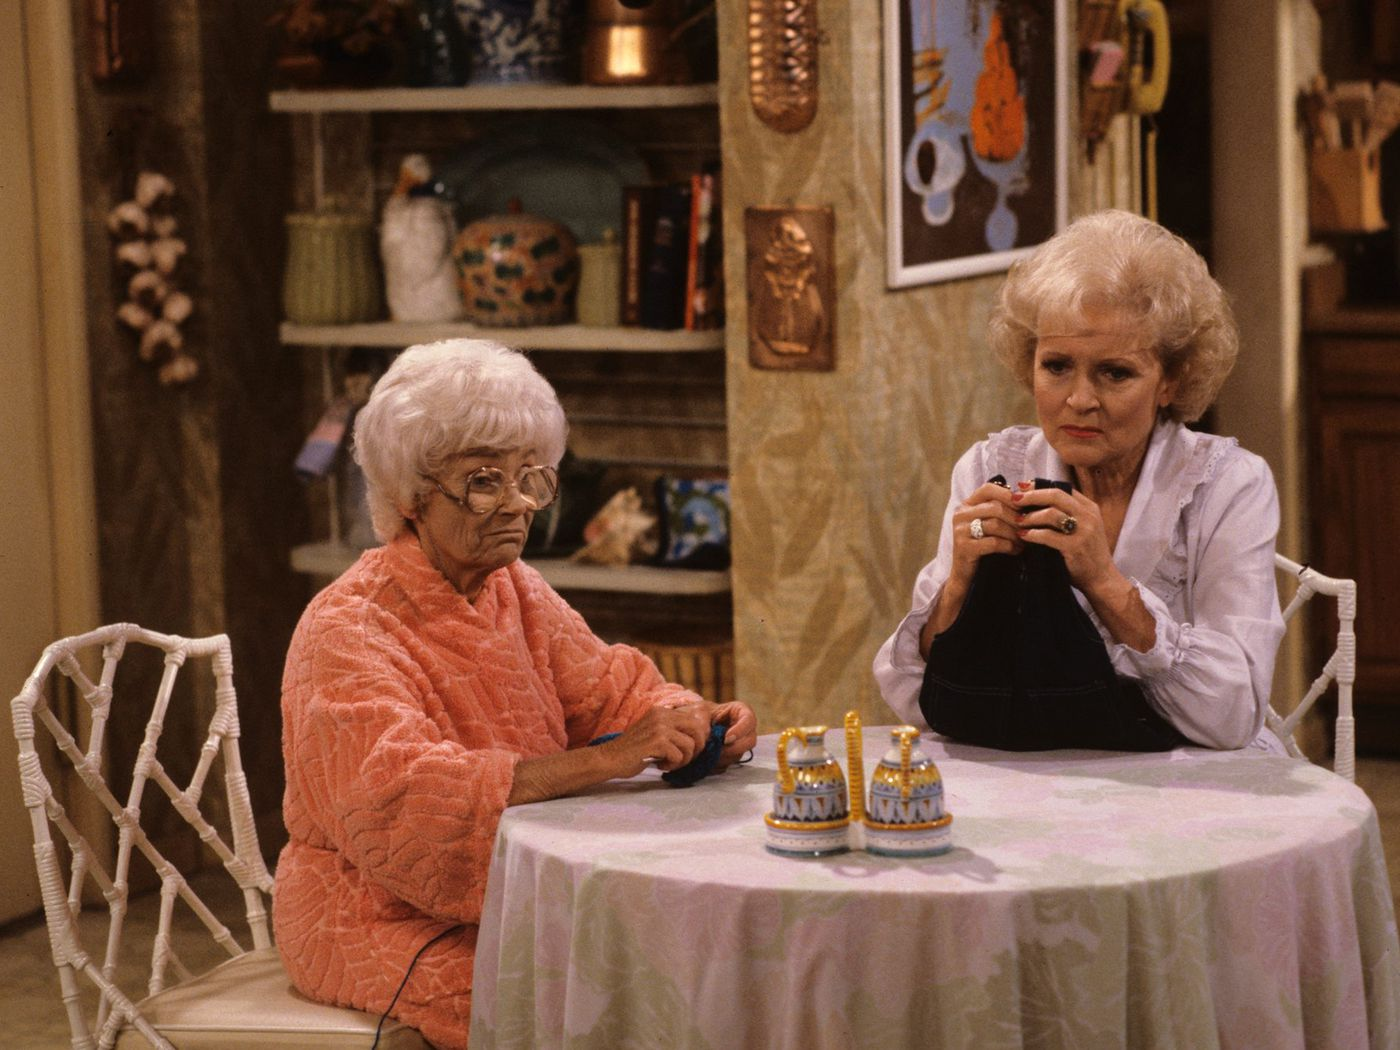 A Golden Girls Themed Restaurant Is Headed To NYC